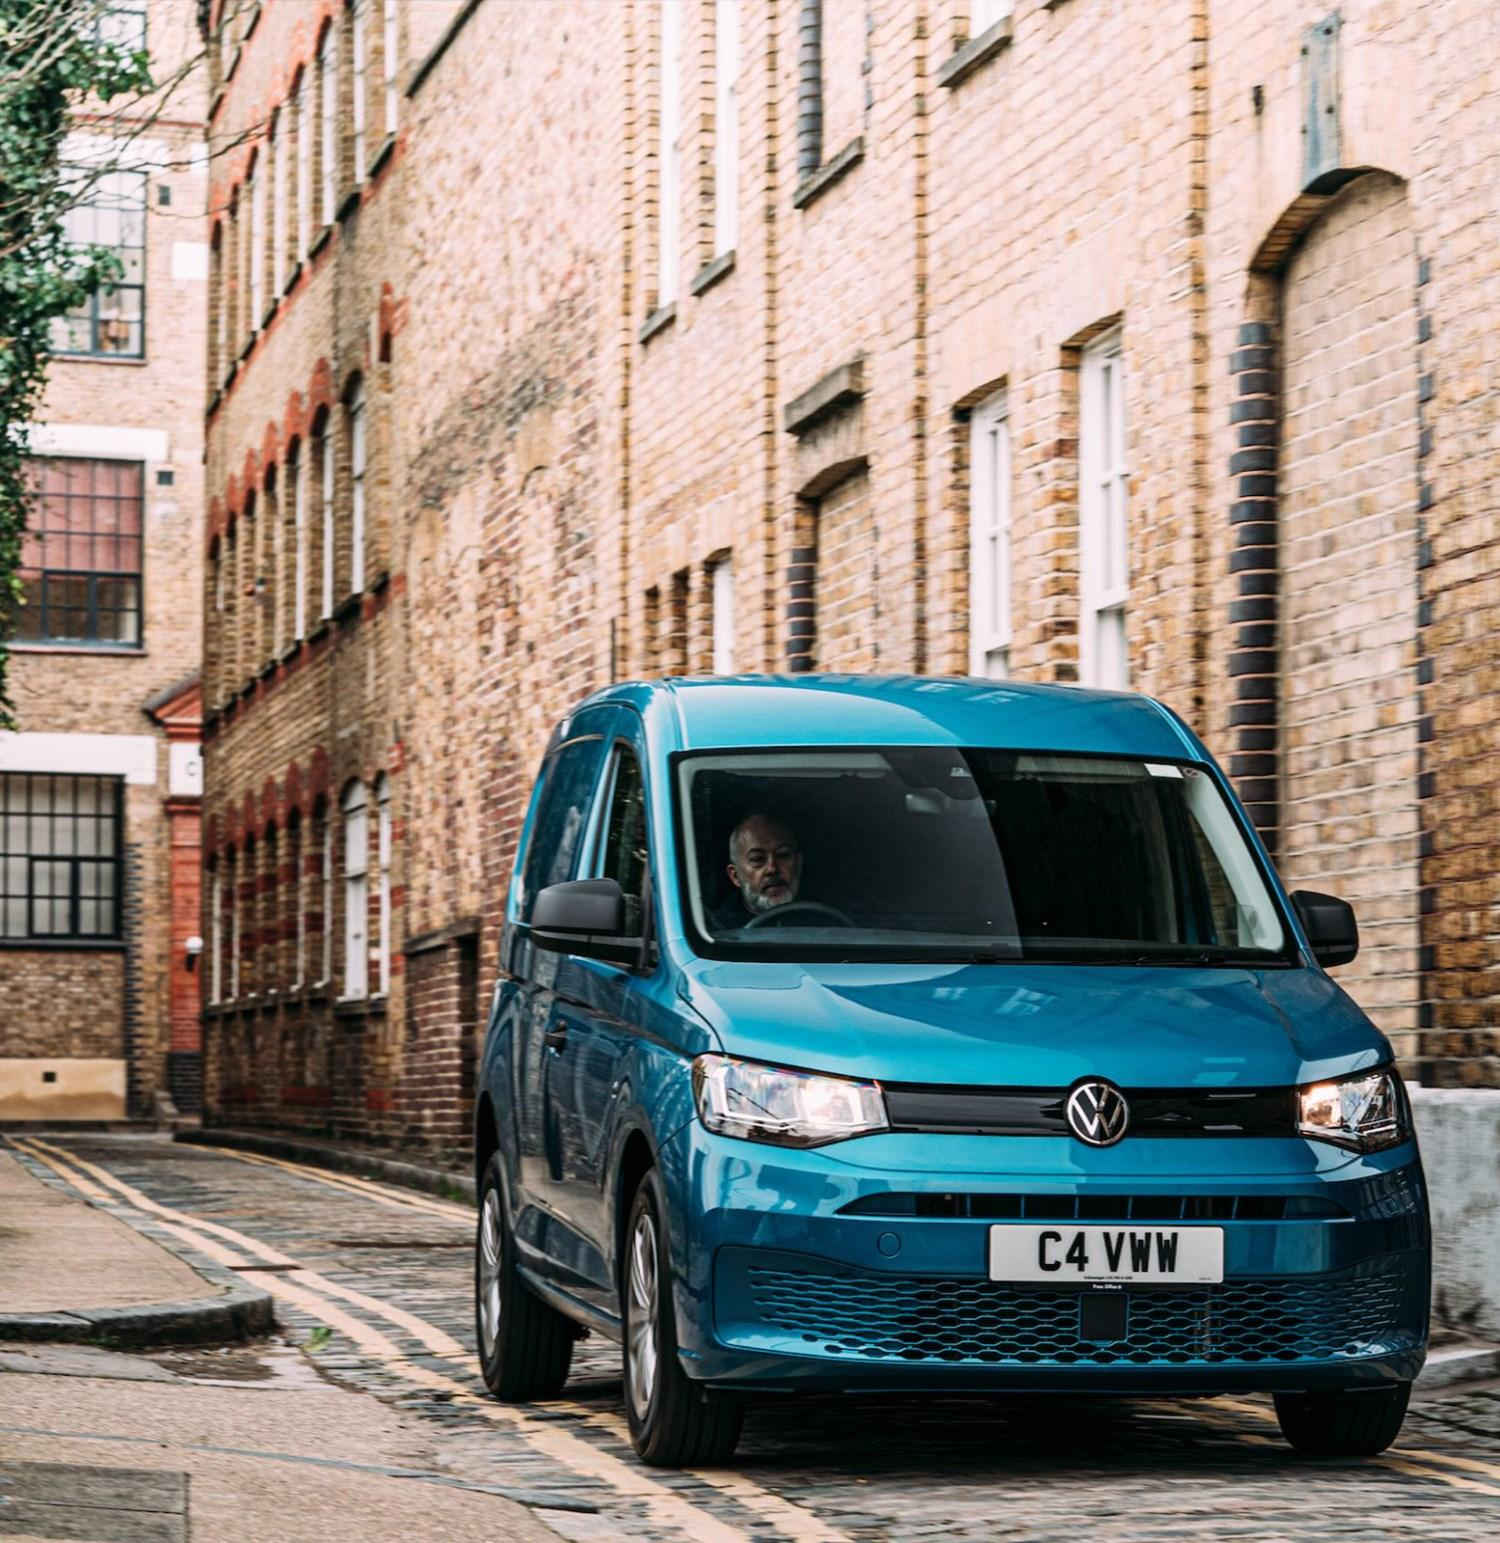 Blue Volkswagen Caddy front view on cobbled road